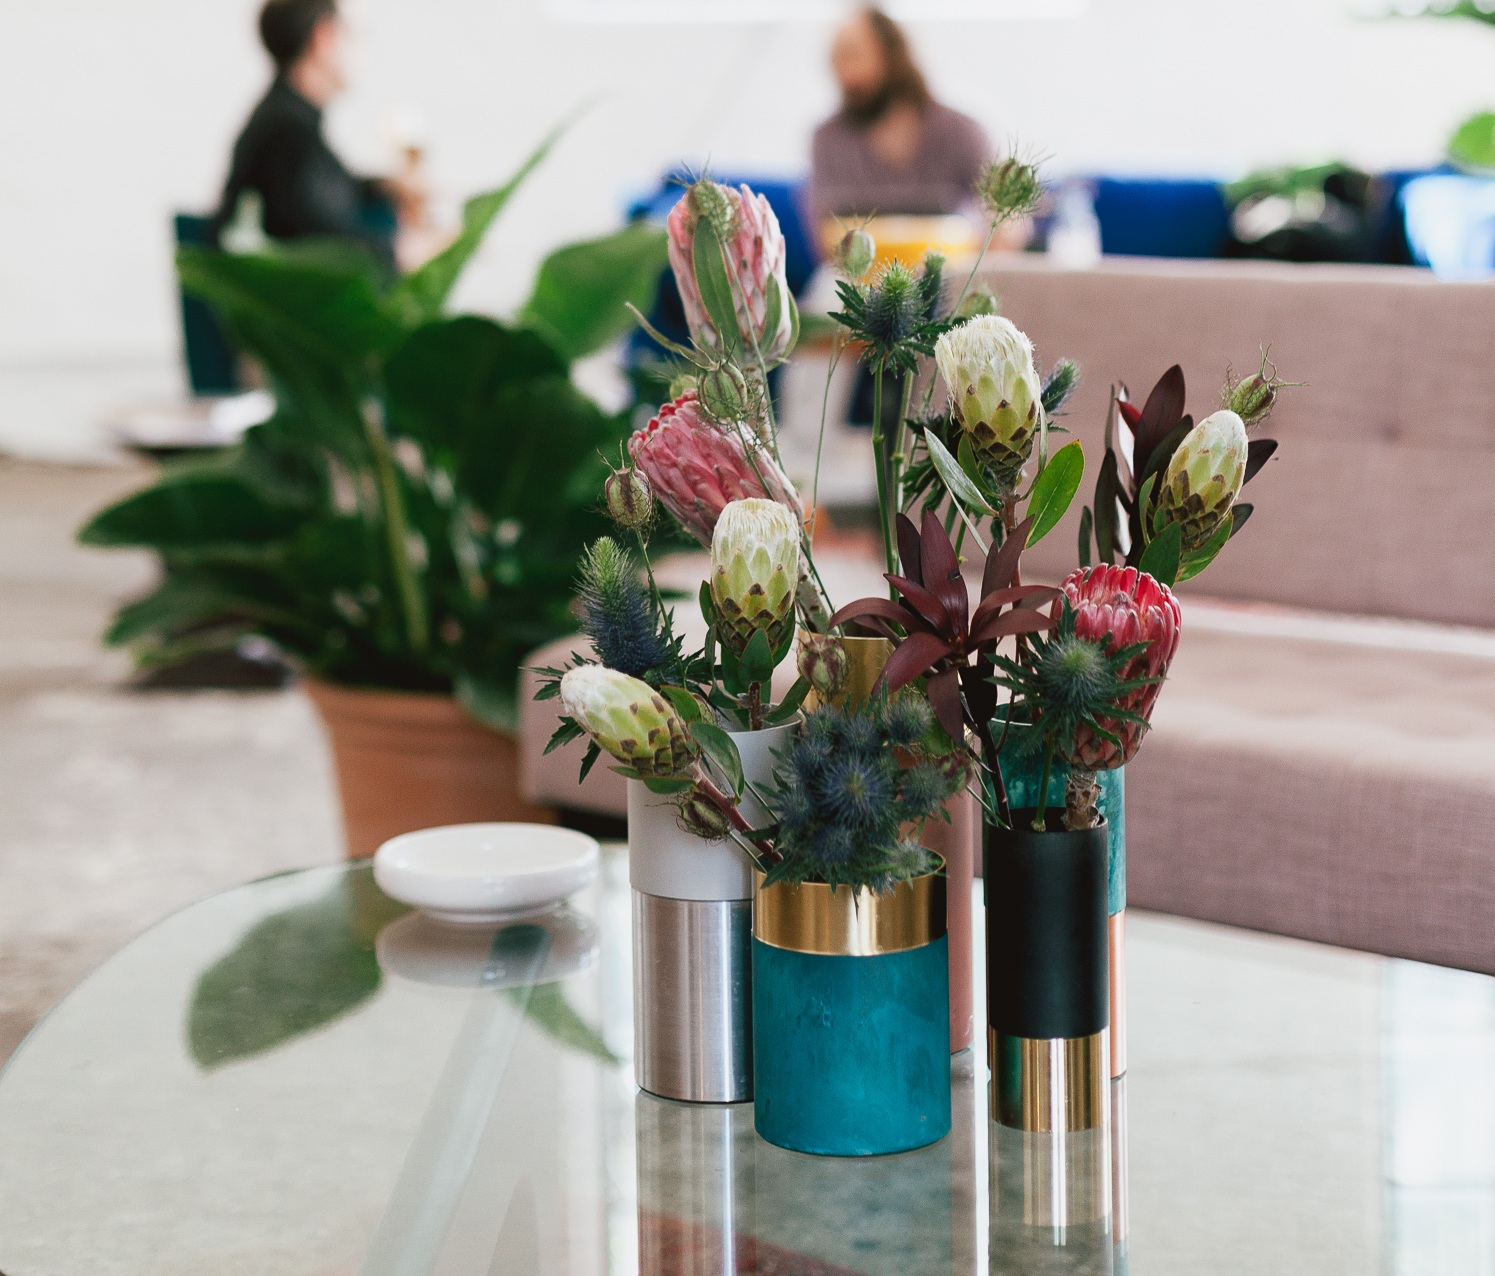 Event Planning:  FvF  / Location:  Zwei Drei Raum  / Photography:  Daniel Far  / Interior Design & Styling:  Wishbone